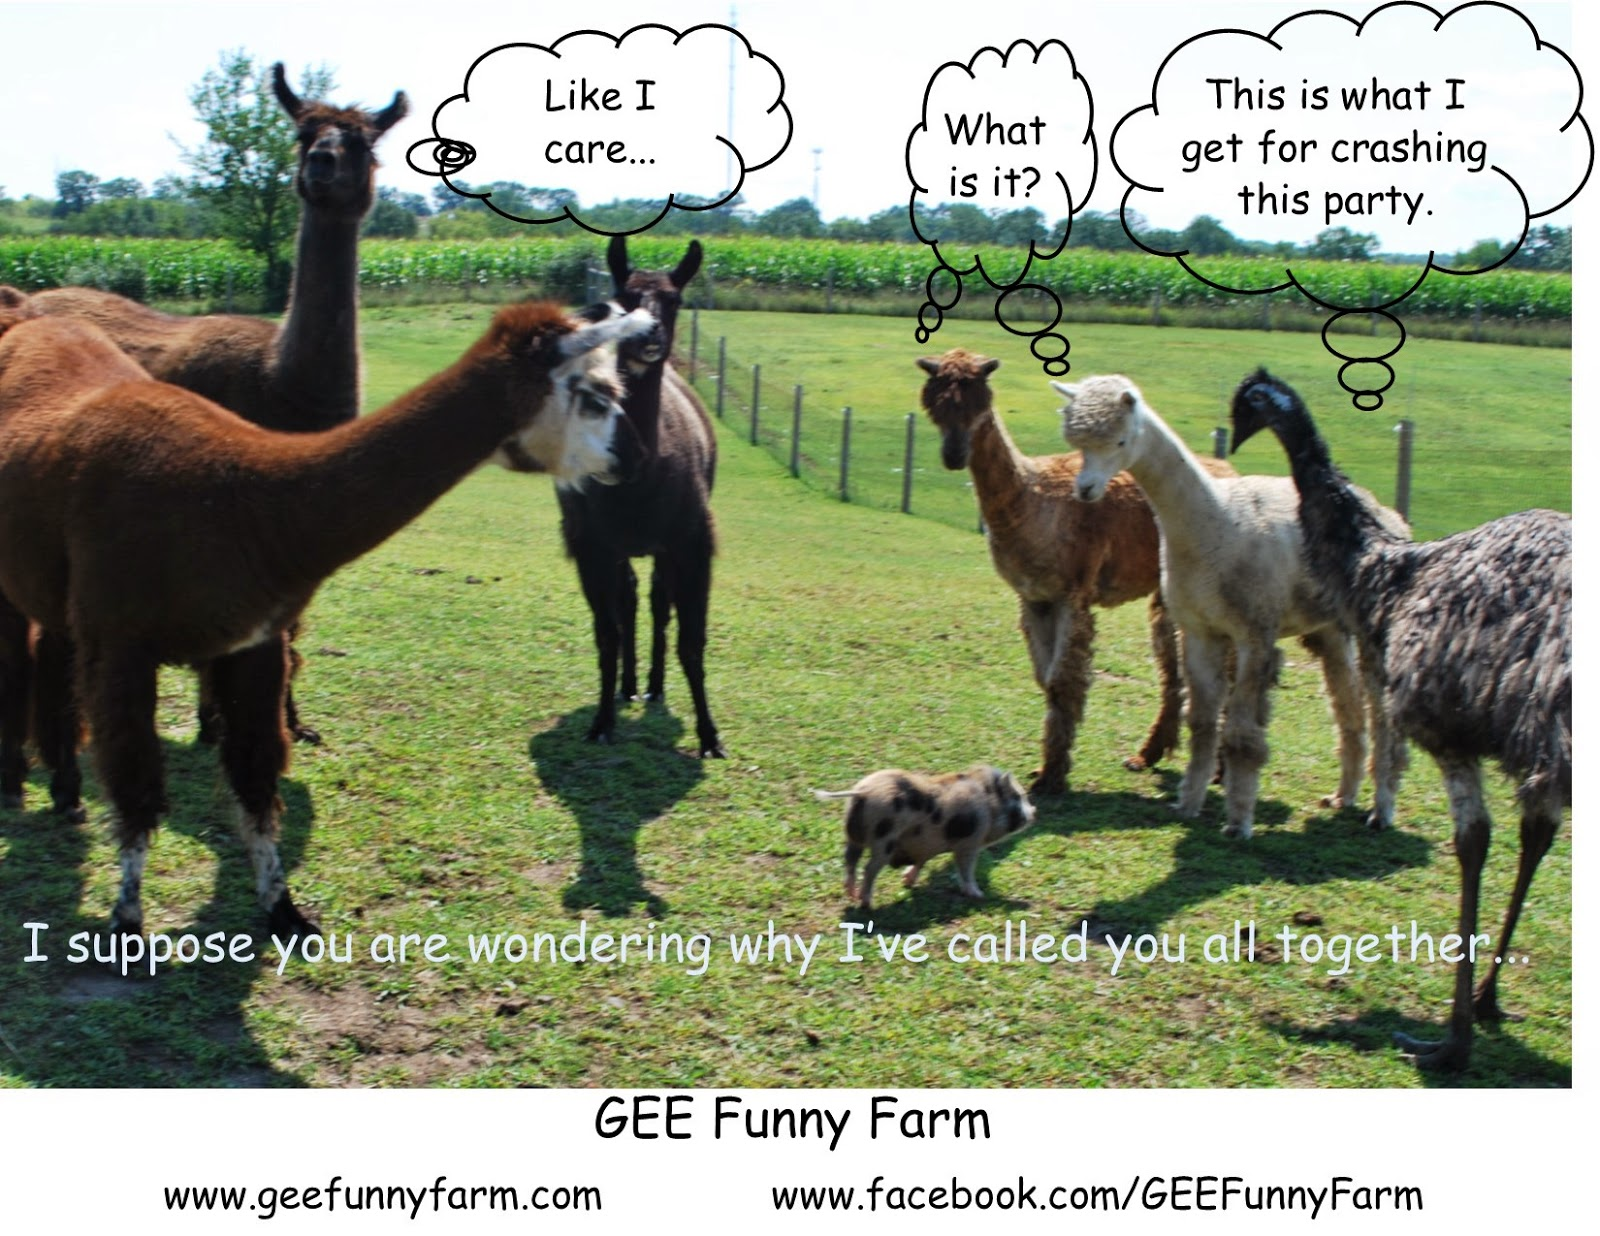 Funny Memes For Tuesday : Gee funny farm: gee funny farm memes